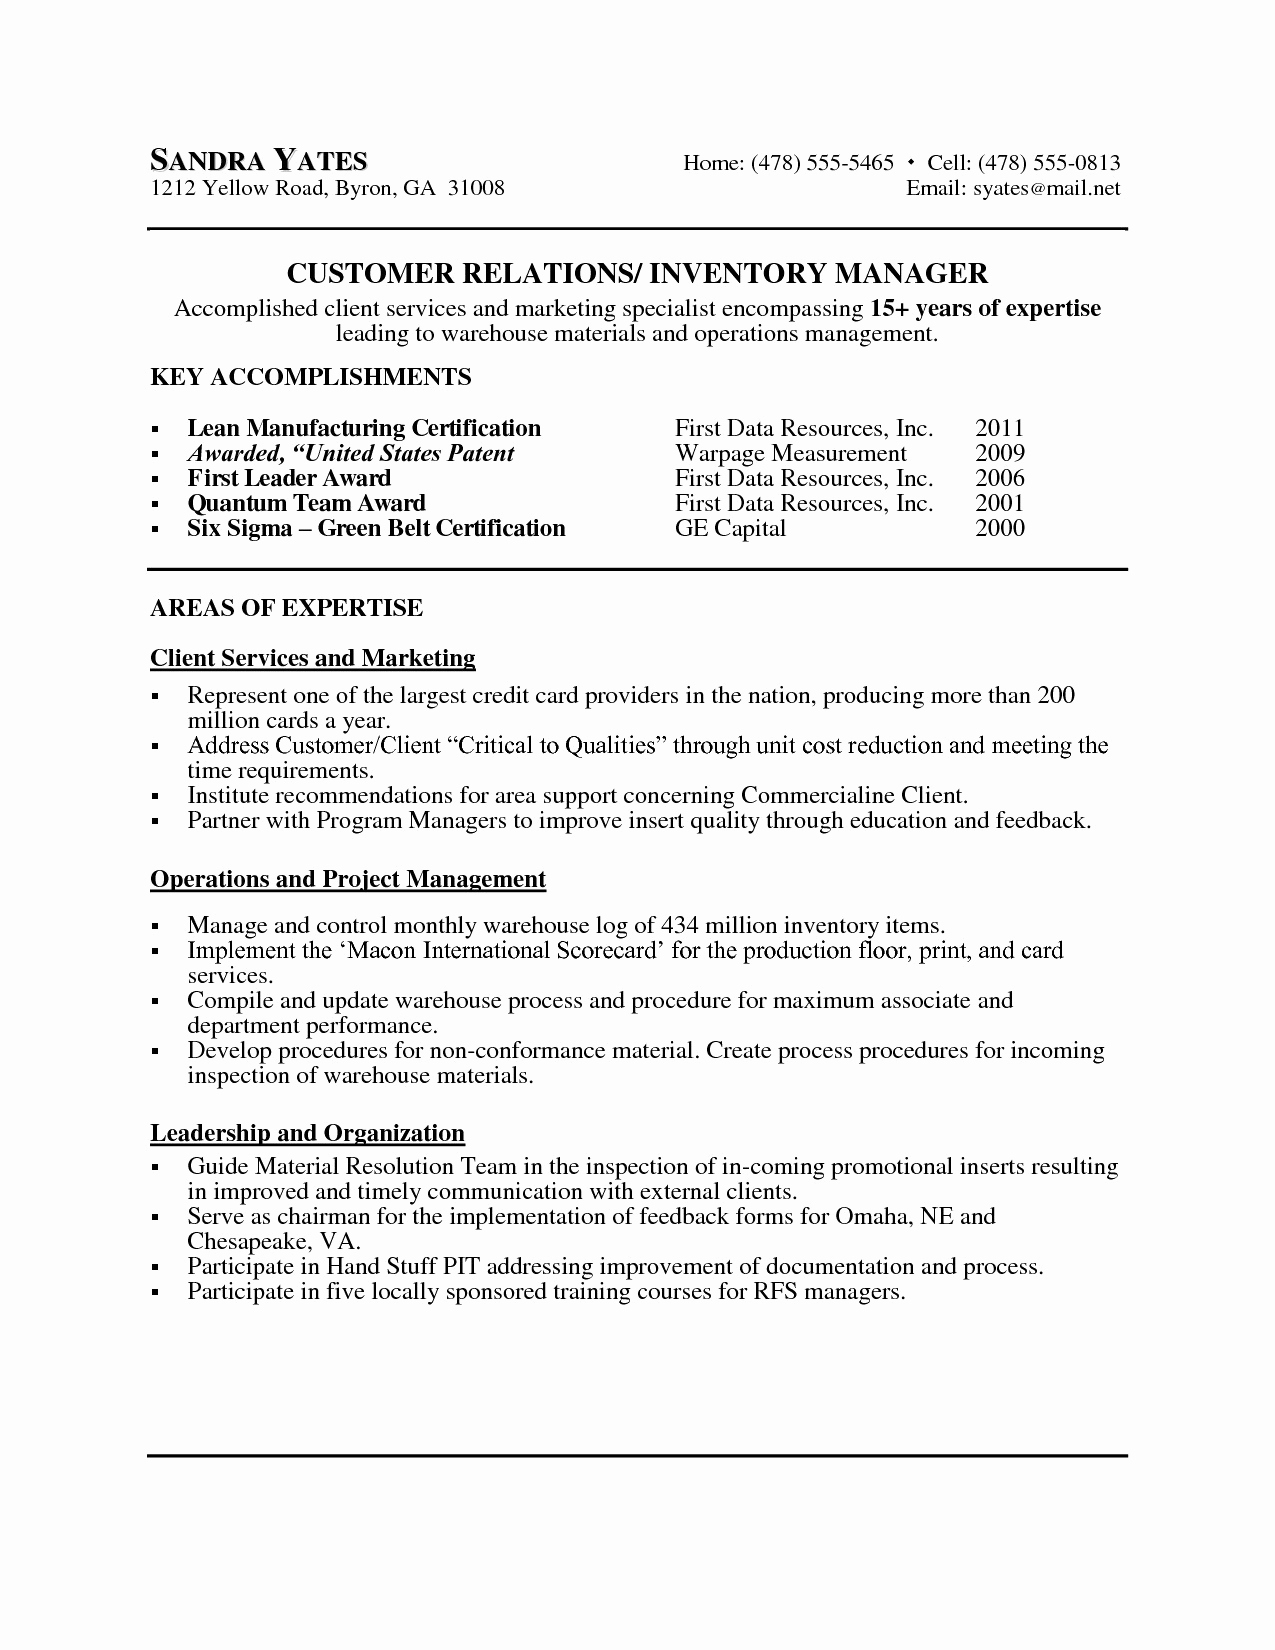 Customer Service Cover Letter Template - Customer Service Cover Letter Examples Luxury American Resume Sample